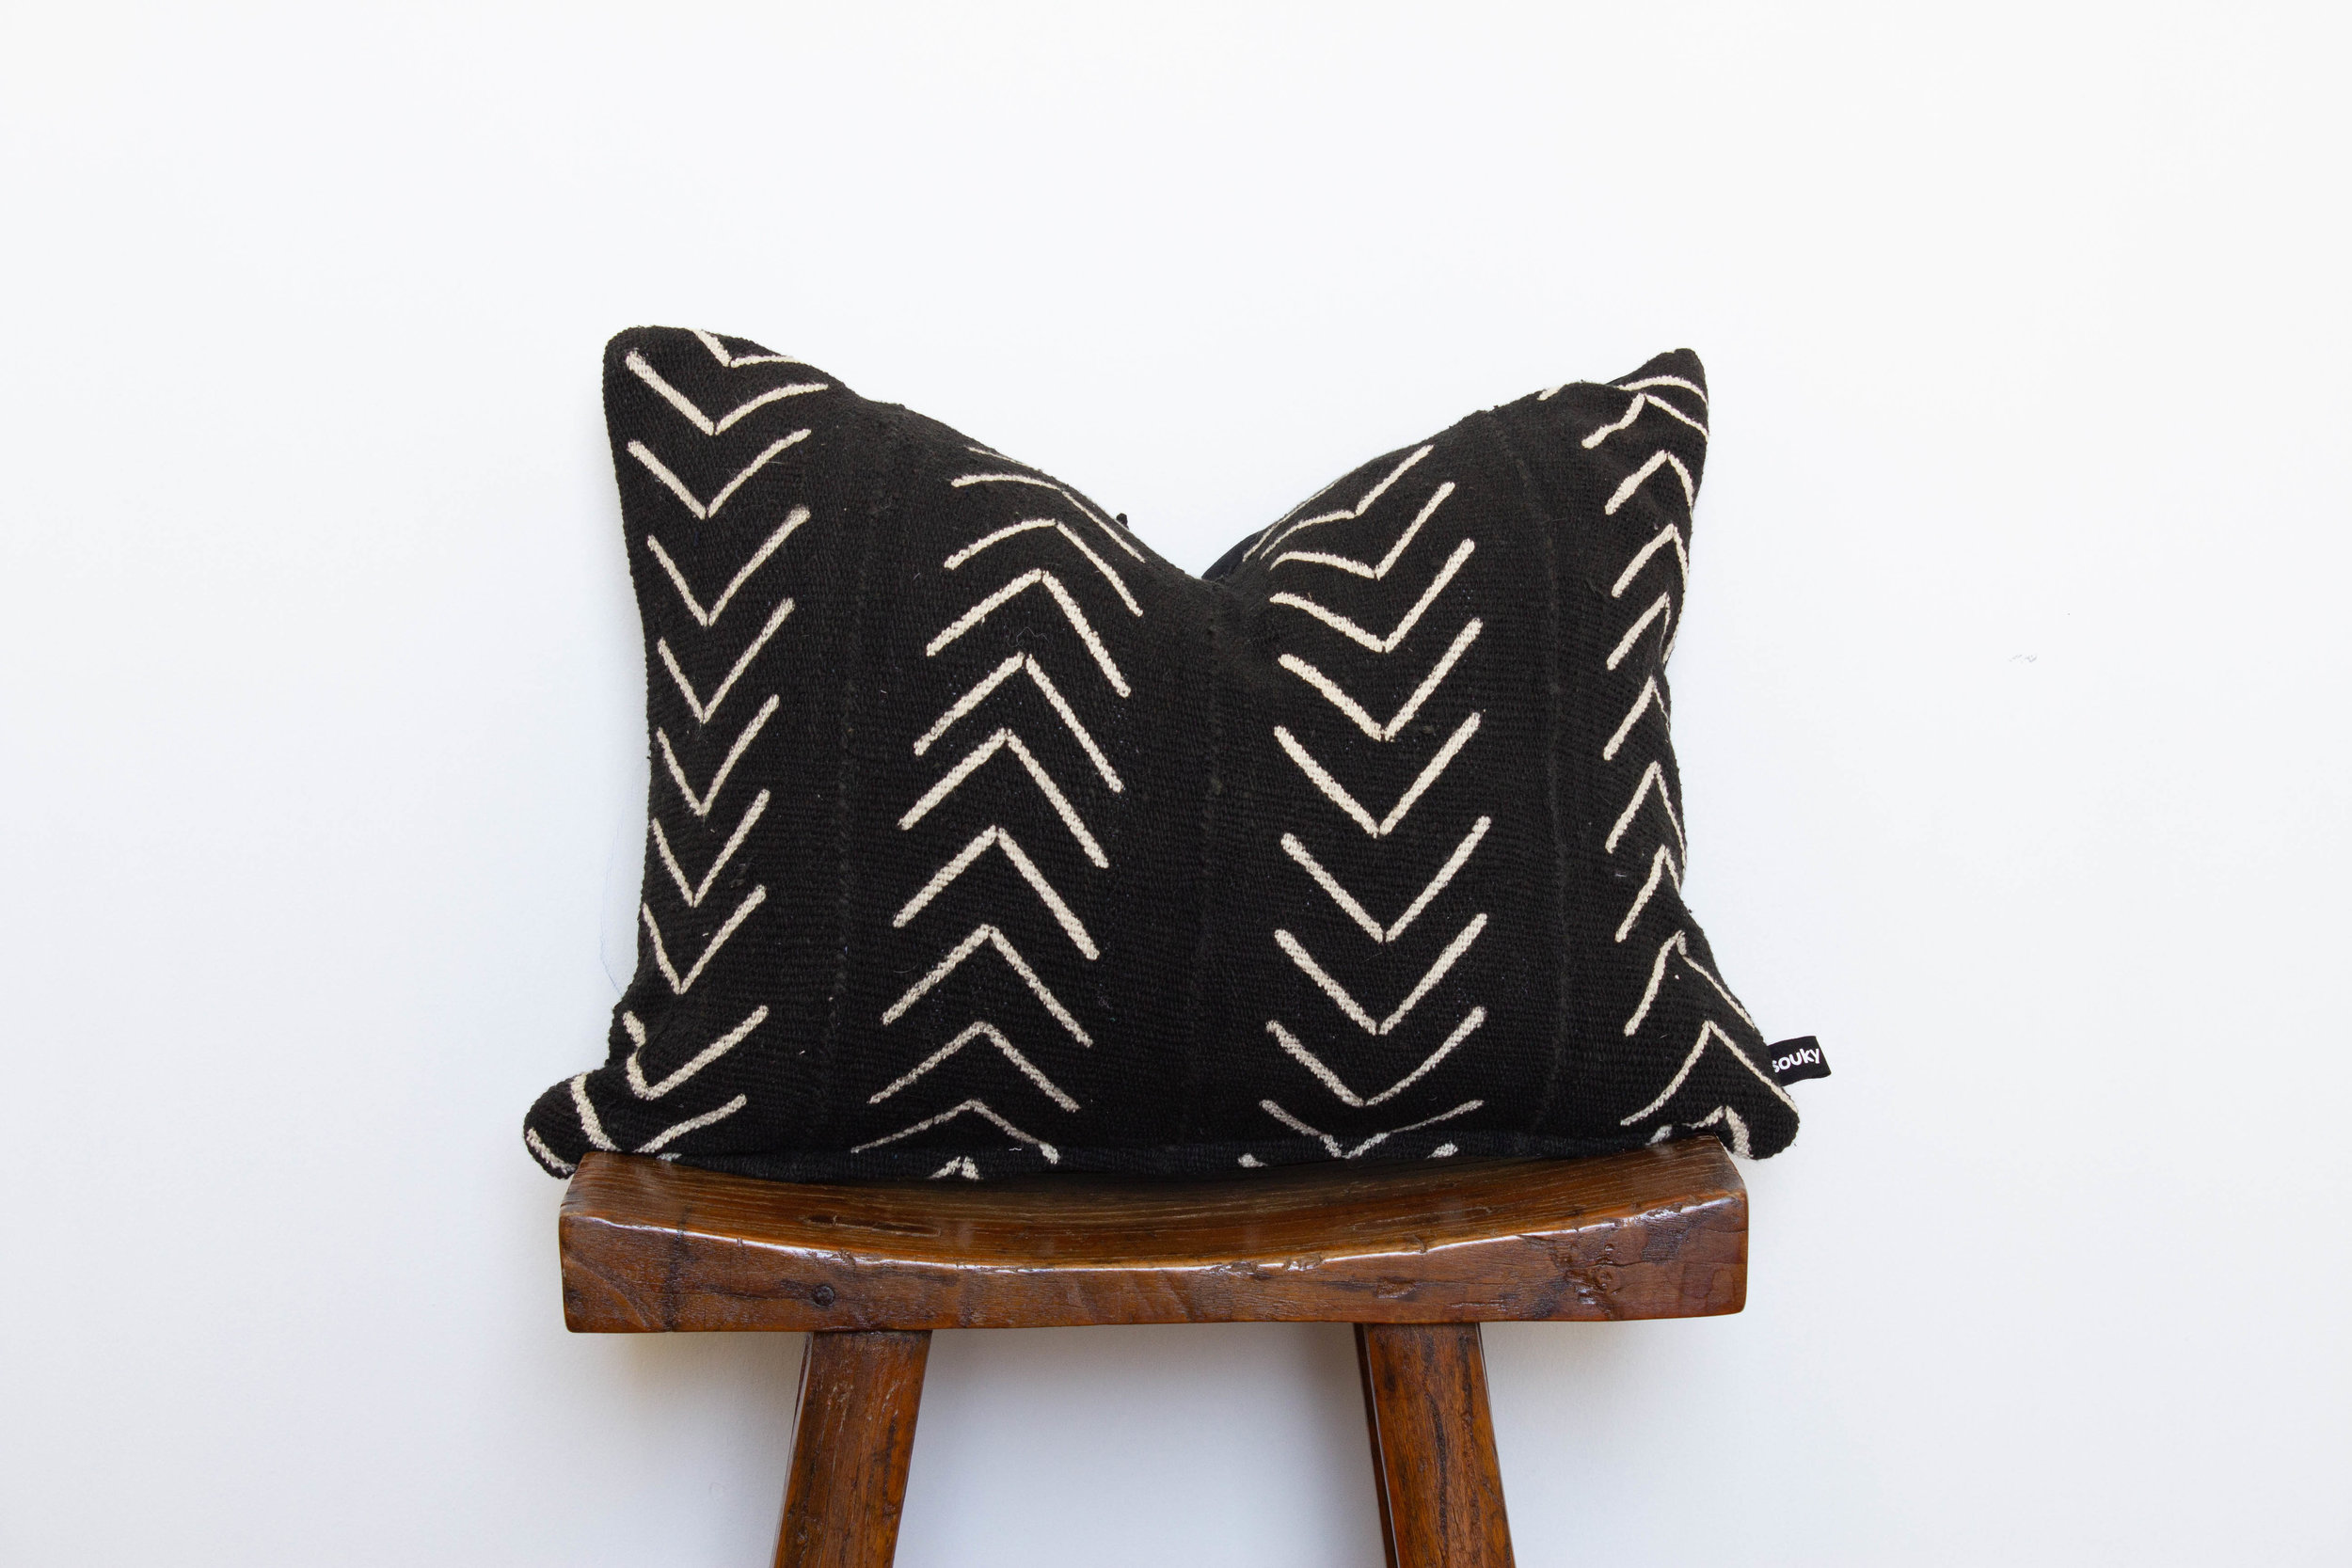 Brenna- 1 available    320 RMB  Pillow cover is made from black African mud-cloth sourced from west Africa  Size: Roughly 49x35 cm  Pillow back is made from a neutral cotton/linen blend  Zipper on bottom of pillow  Down insert included  Hand wash or spot clean recommended